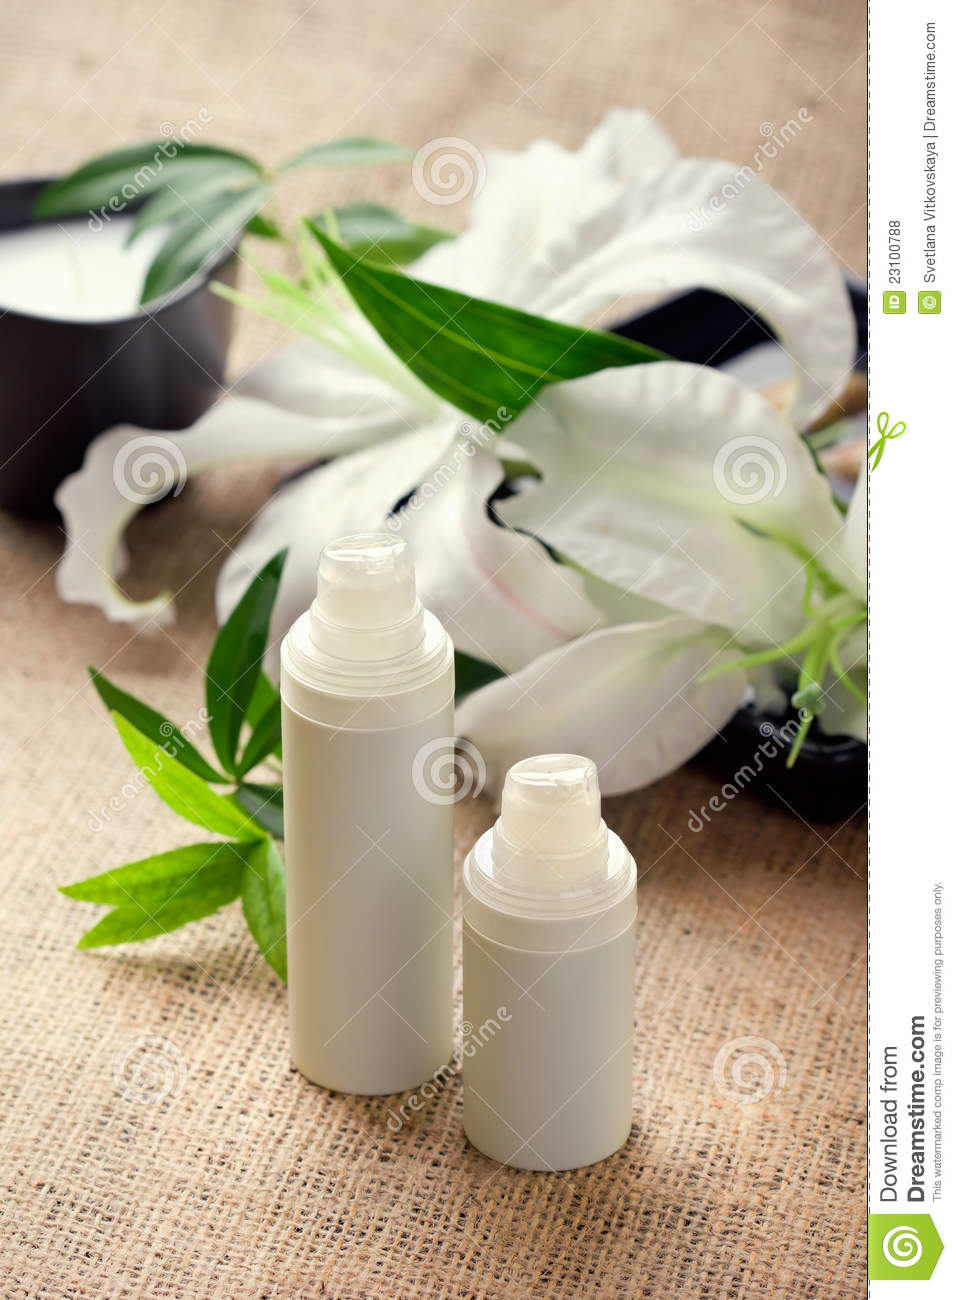 Facebody care concept lily flower with creams stock photo image download facebody care concept lily flower with creams stock photo image of izmirmasajfo